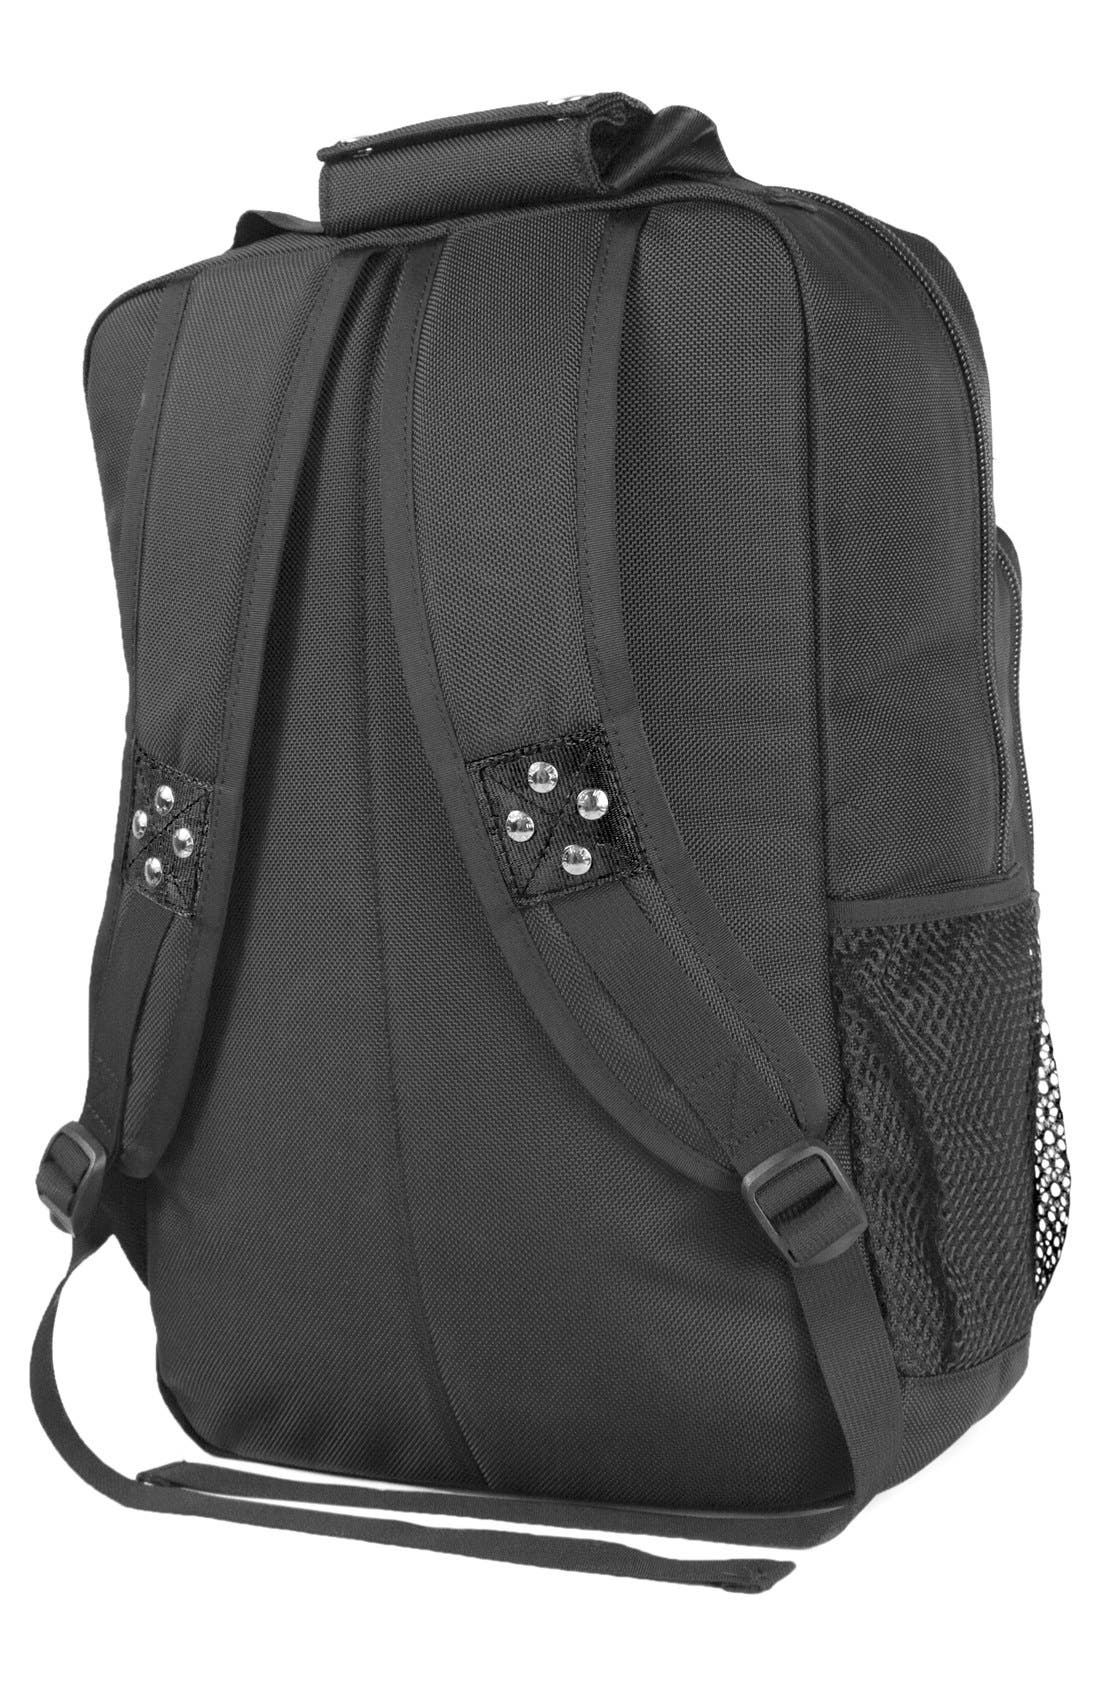 'TRS Ballistic - Executive' Backpack,                             Alternate thumbnail 4, color,                             BLACK/ BLACK